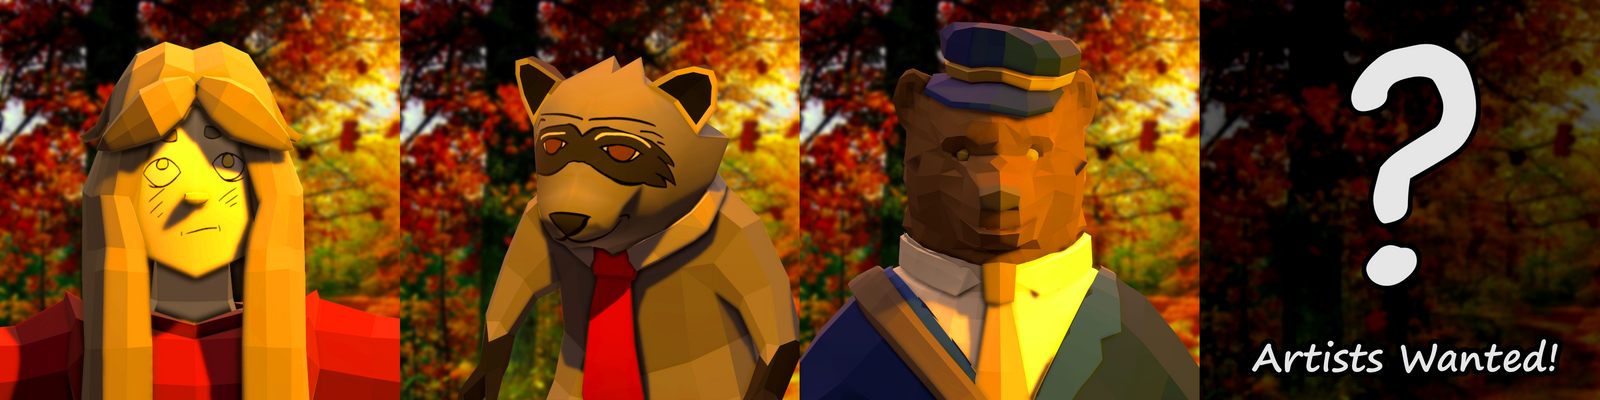 Poly Artists Wanted for Autumn! (Game Project) by Littlenorwegians